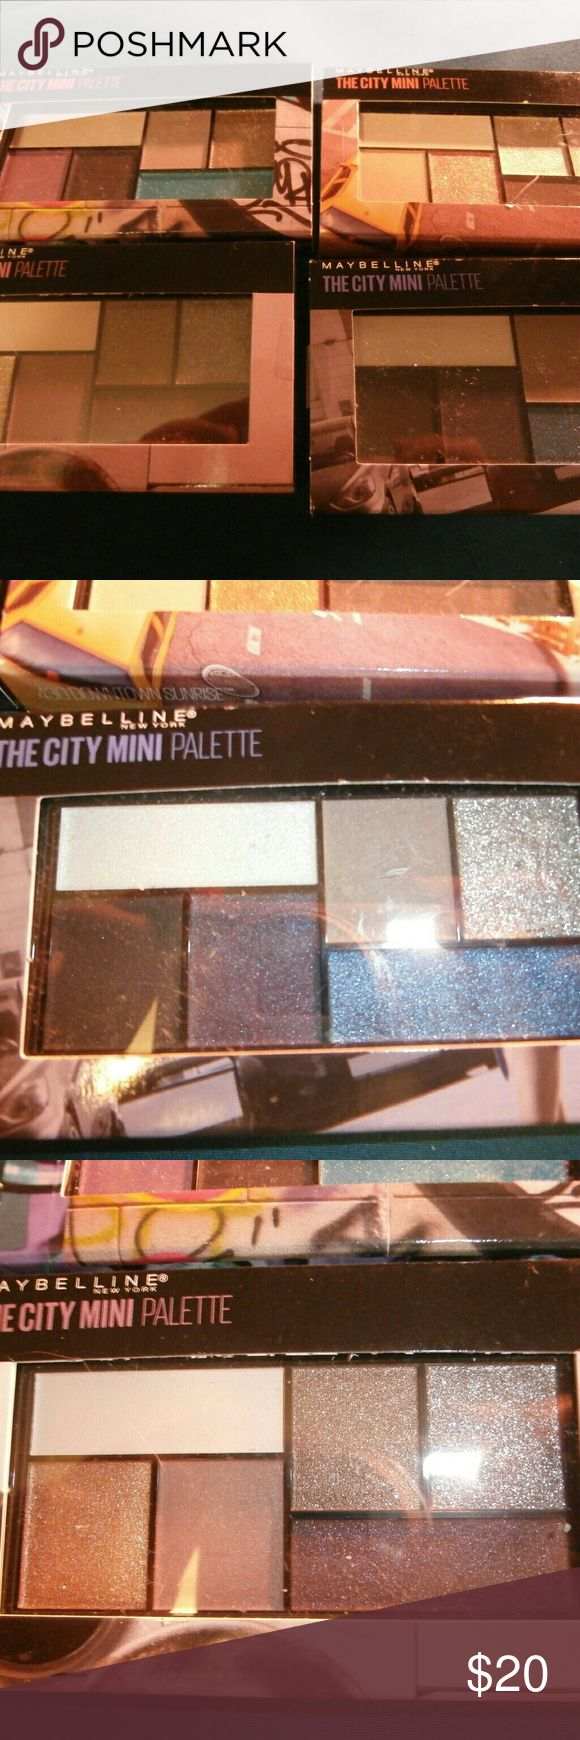 🆕4 Maybelline City Mini Palettes NWT Each palette contains six colors  Half metallic, half matte Each color palette tells a story.     Downtown sunrise (golds, copper, brown)     Chill brunch neutrals (more metallic neutrals)     Graffiti pop! (Teal, fuschia, purple, and neutrals)     Concrete runway (grey, silver, cobalt, black, and white)  All are new and sealed! Lowest price! Thank you. Maybelline Makeup Eyeshadow